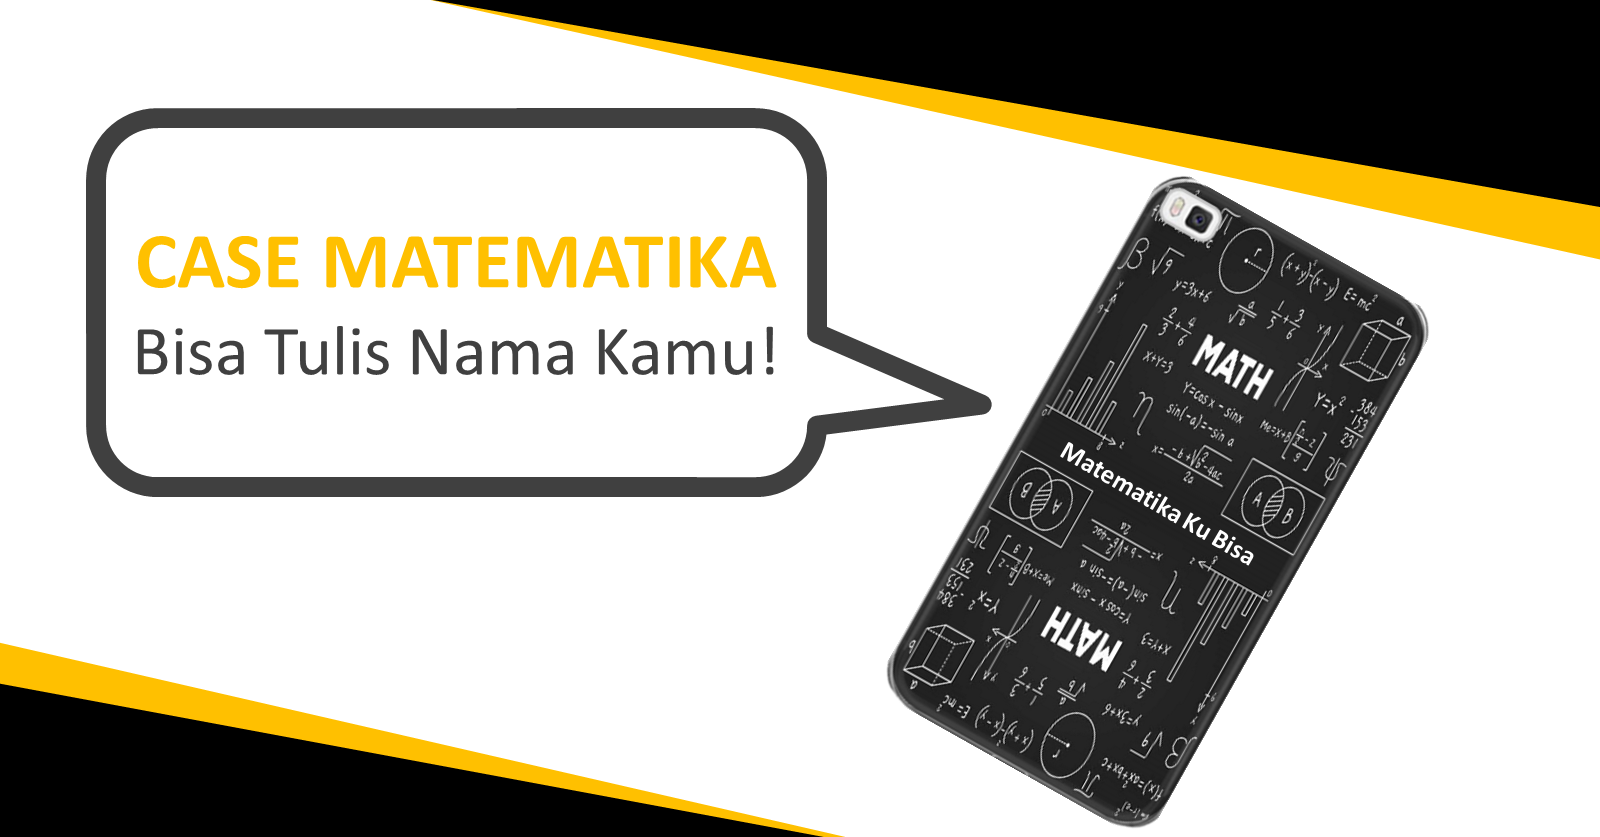 Custom Case Matematika